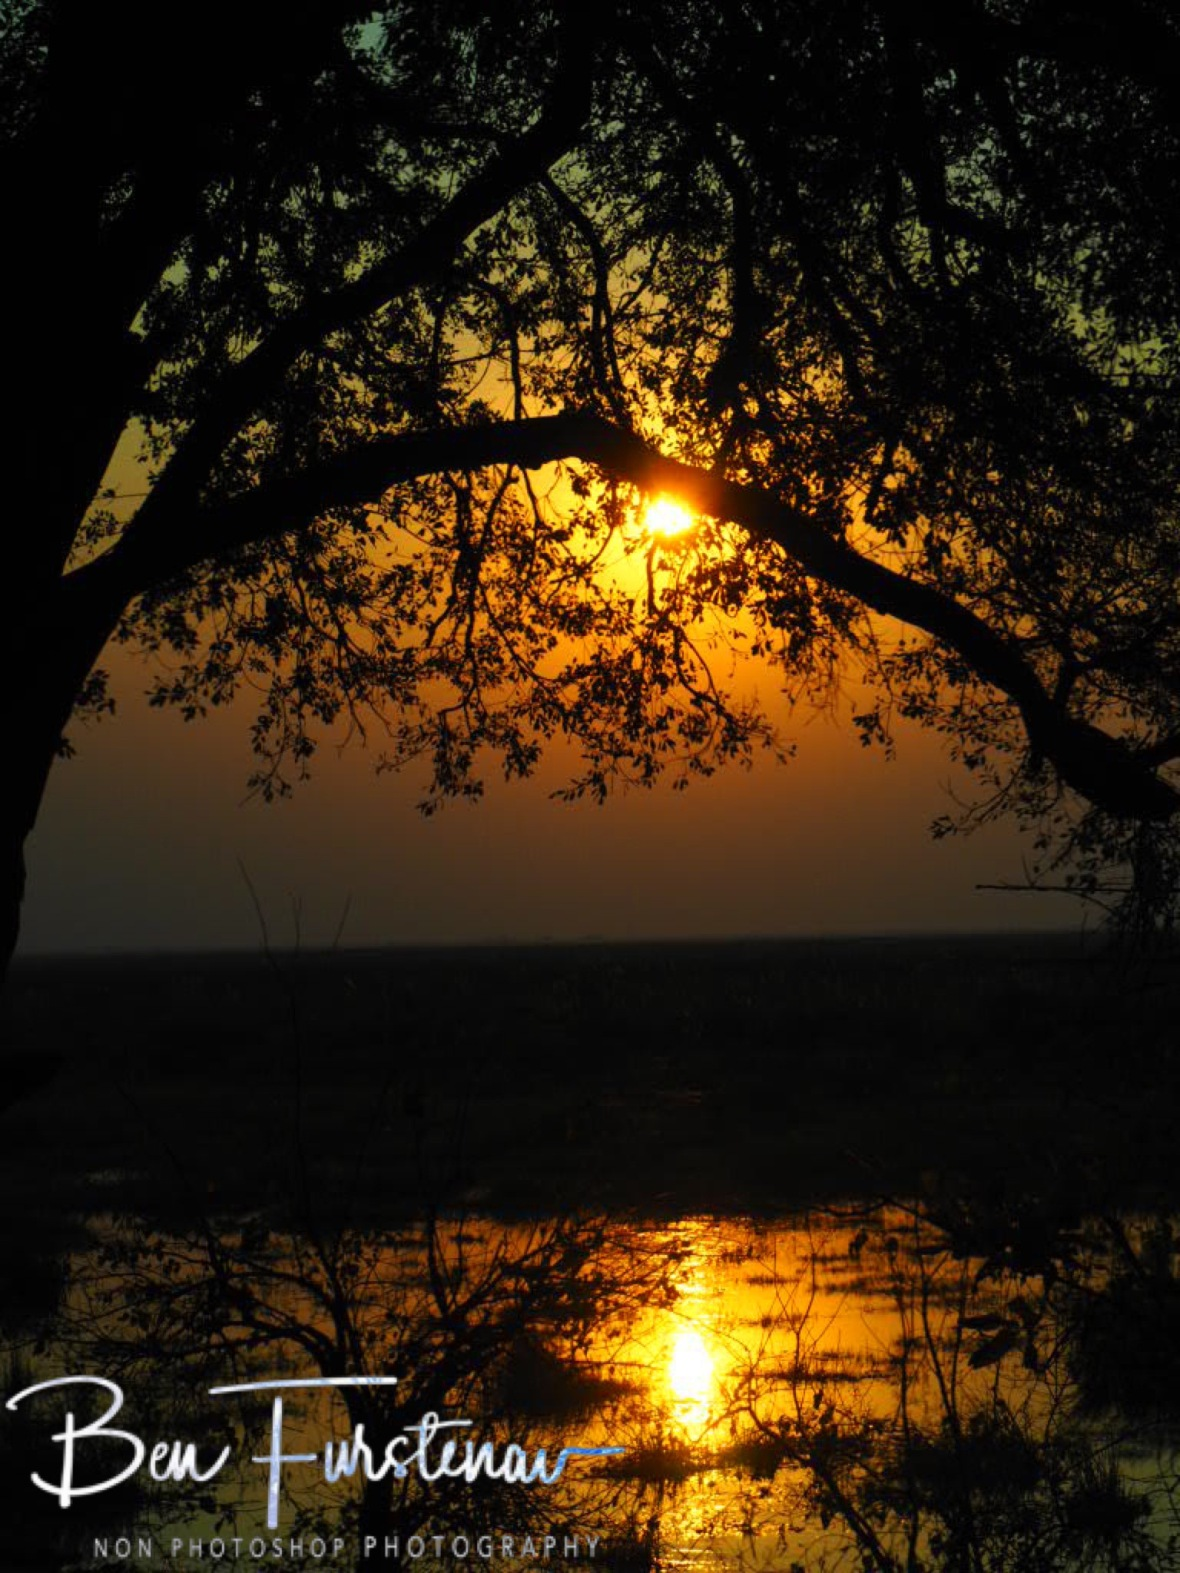 Sunset over Linyanti swamp, Chobe National Park, Okavango Delta, Botswana